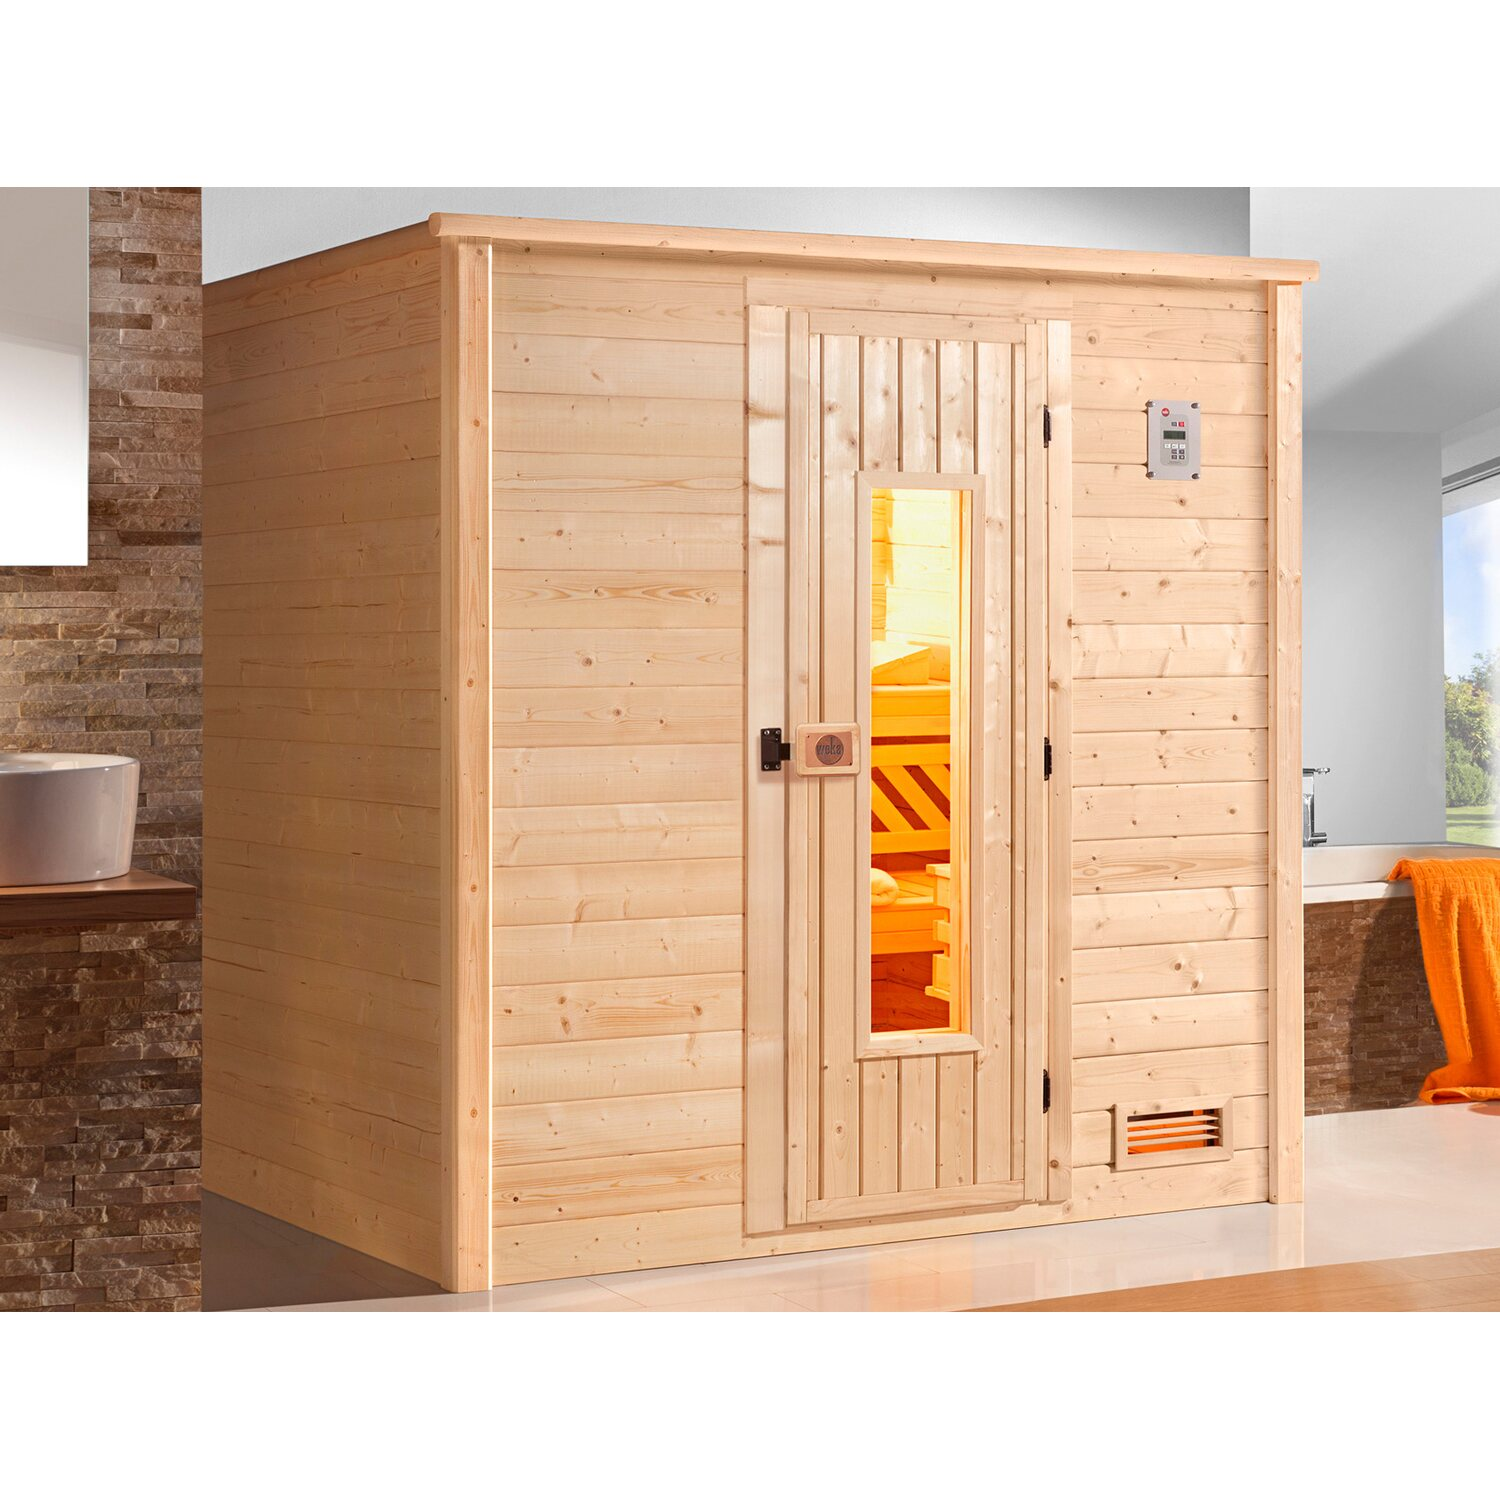 sauna mit ofen kaufen vr64 hitoiro. Black Bedroom Furniture Sets. Home Design Ideas